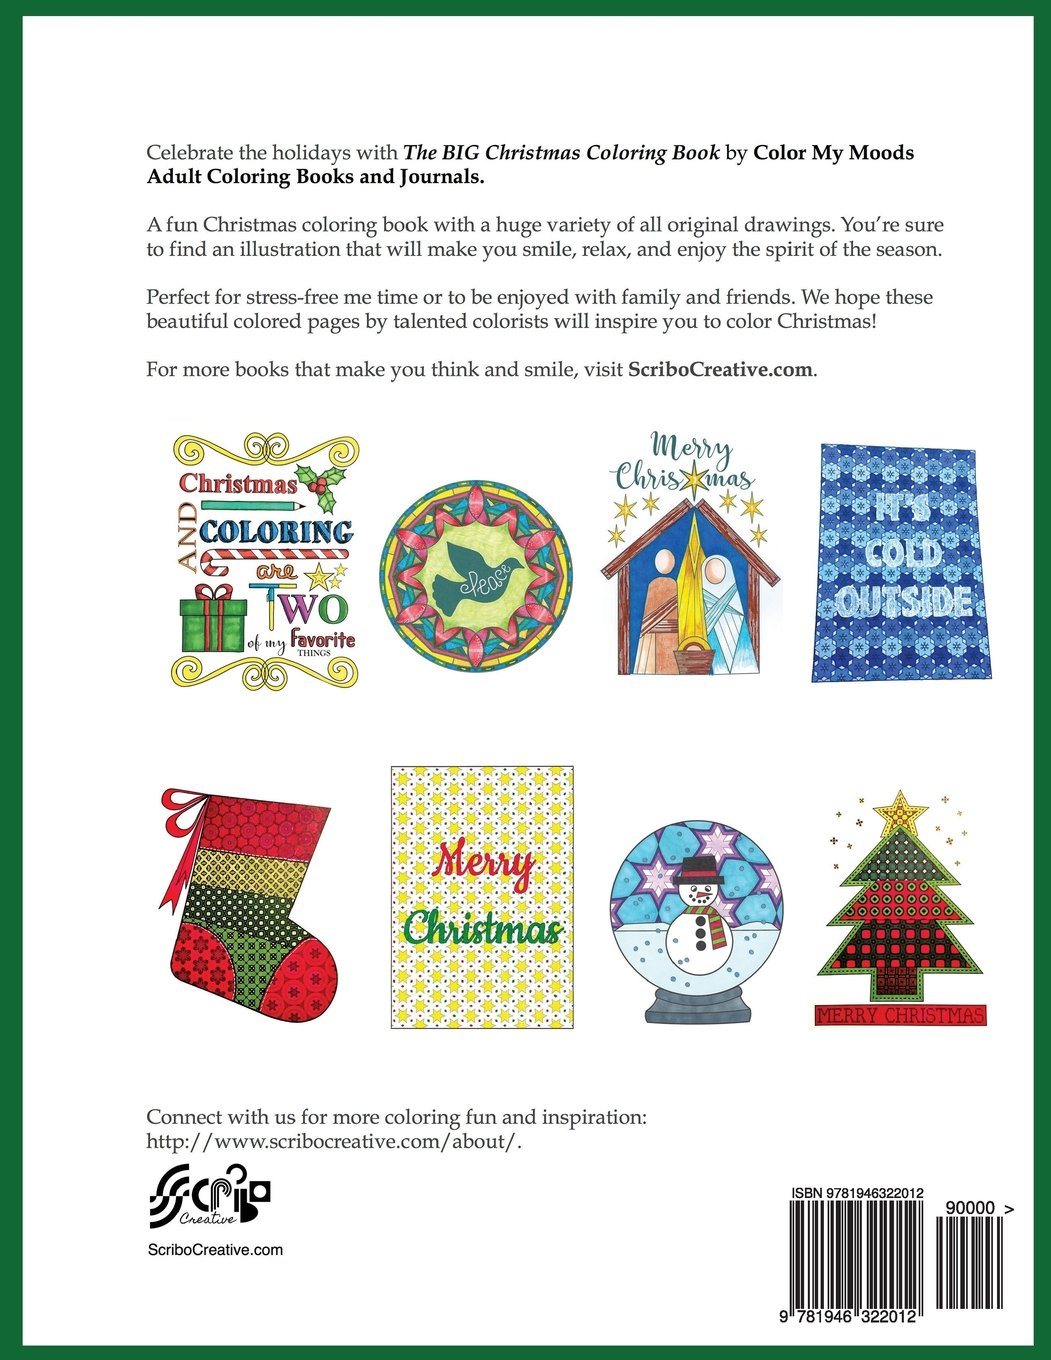 Amazon The BIG Christmas Coloring Book By Color My Moods Adult Books And Journals A Festive Collection Of Drawings Including Nativity